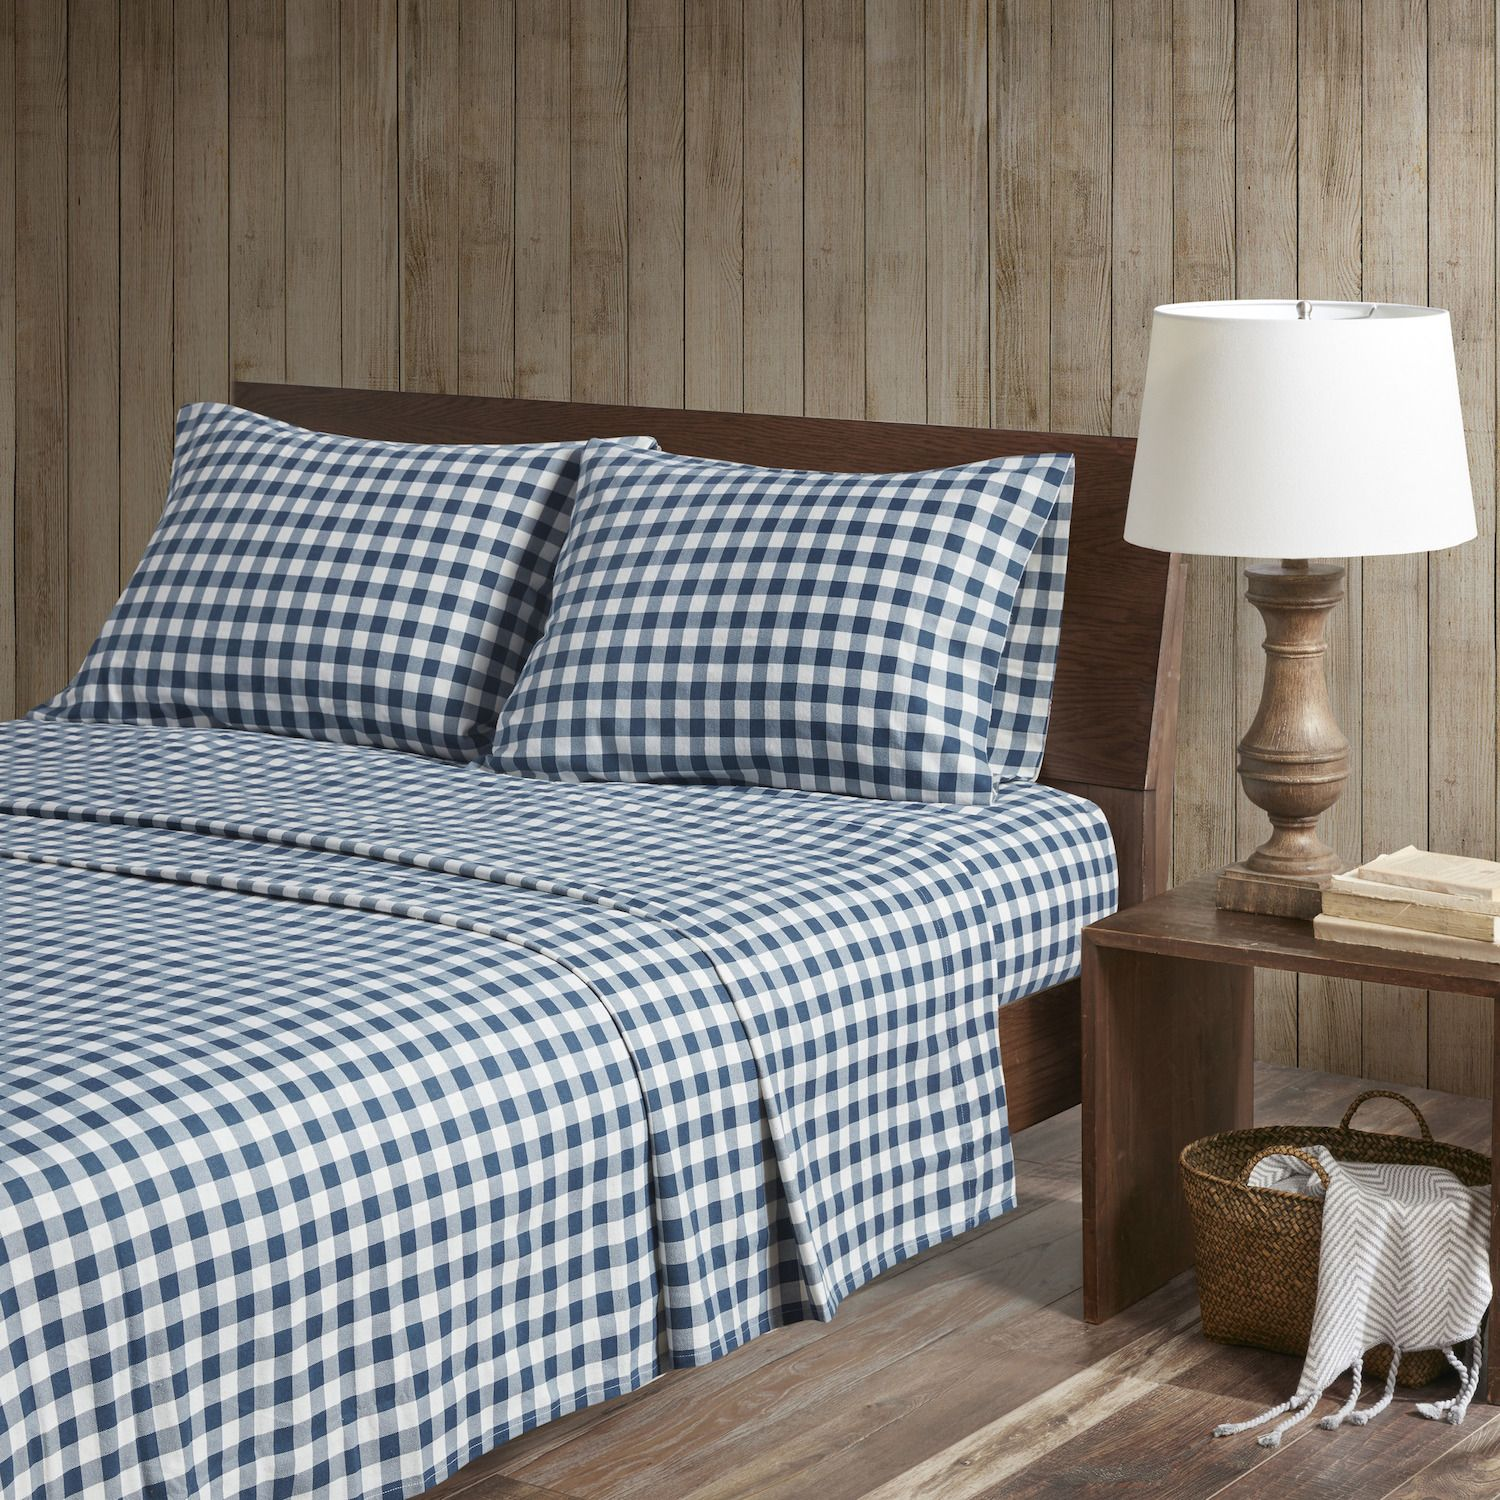 comforter number packers at b bay bedroom sham office and plaid shop home green pro set the item